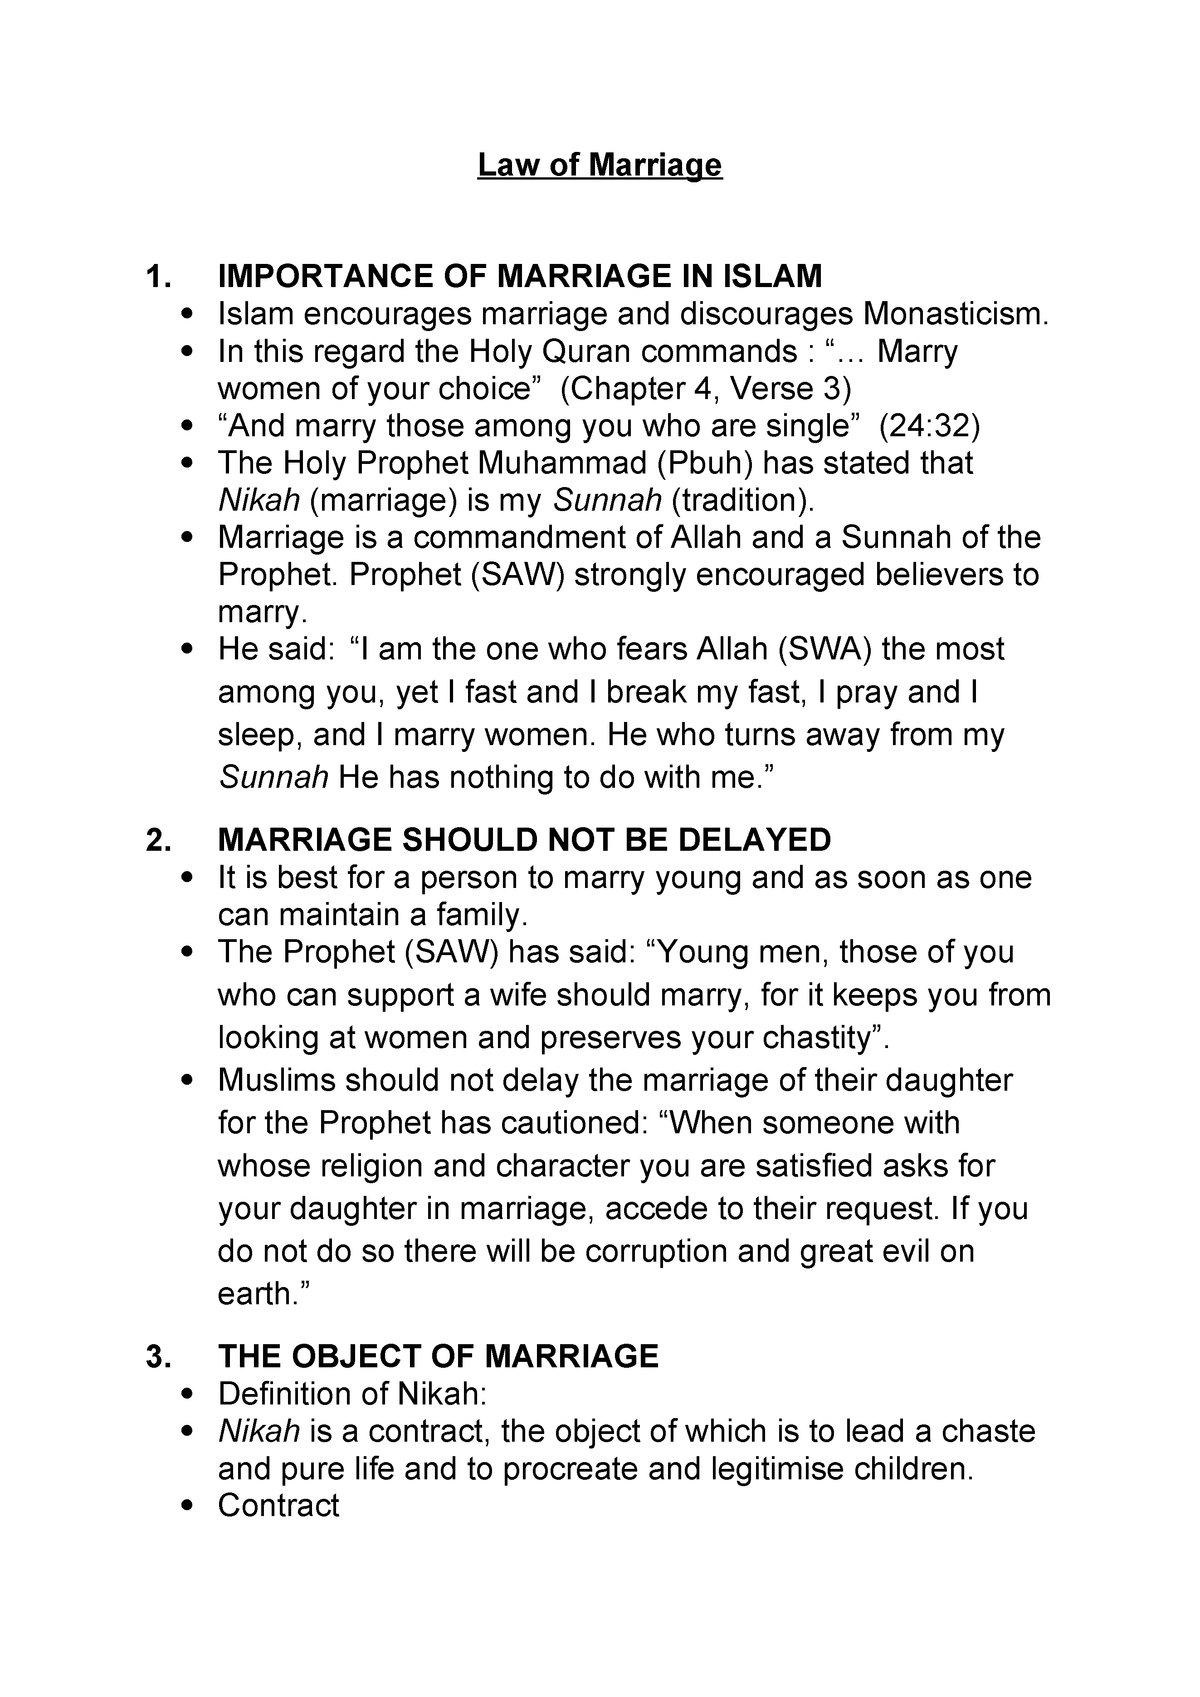 Law of Marriage - Islamic Law - Legal Diversity LAWS3LDH1